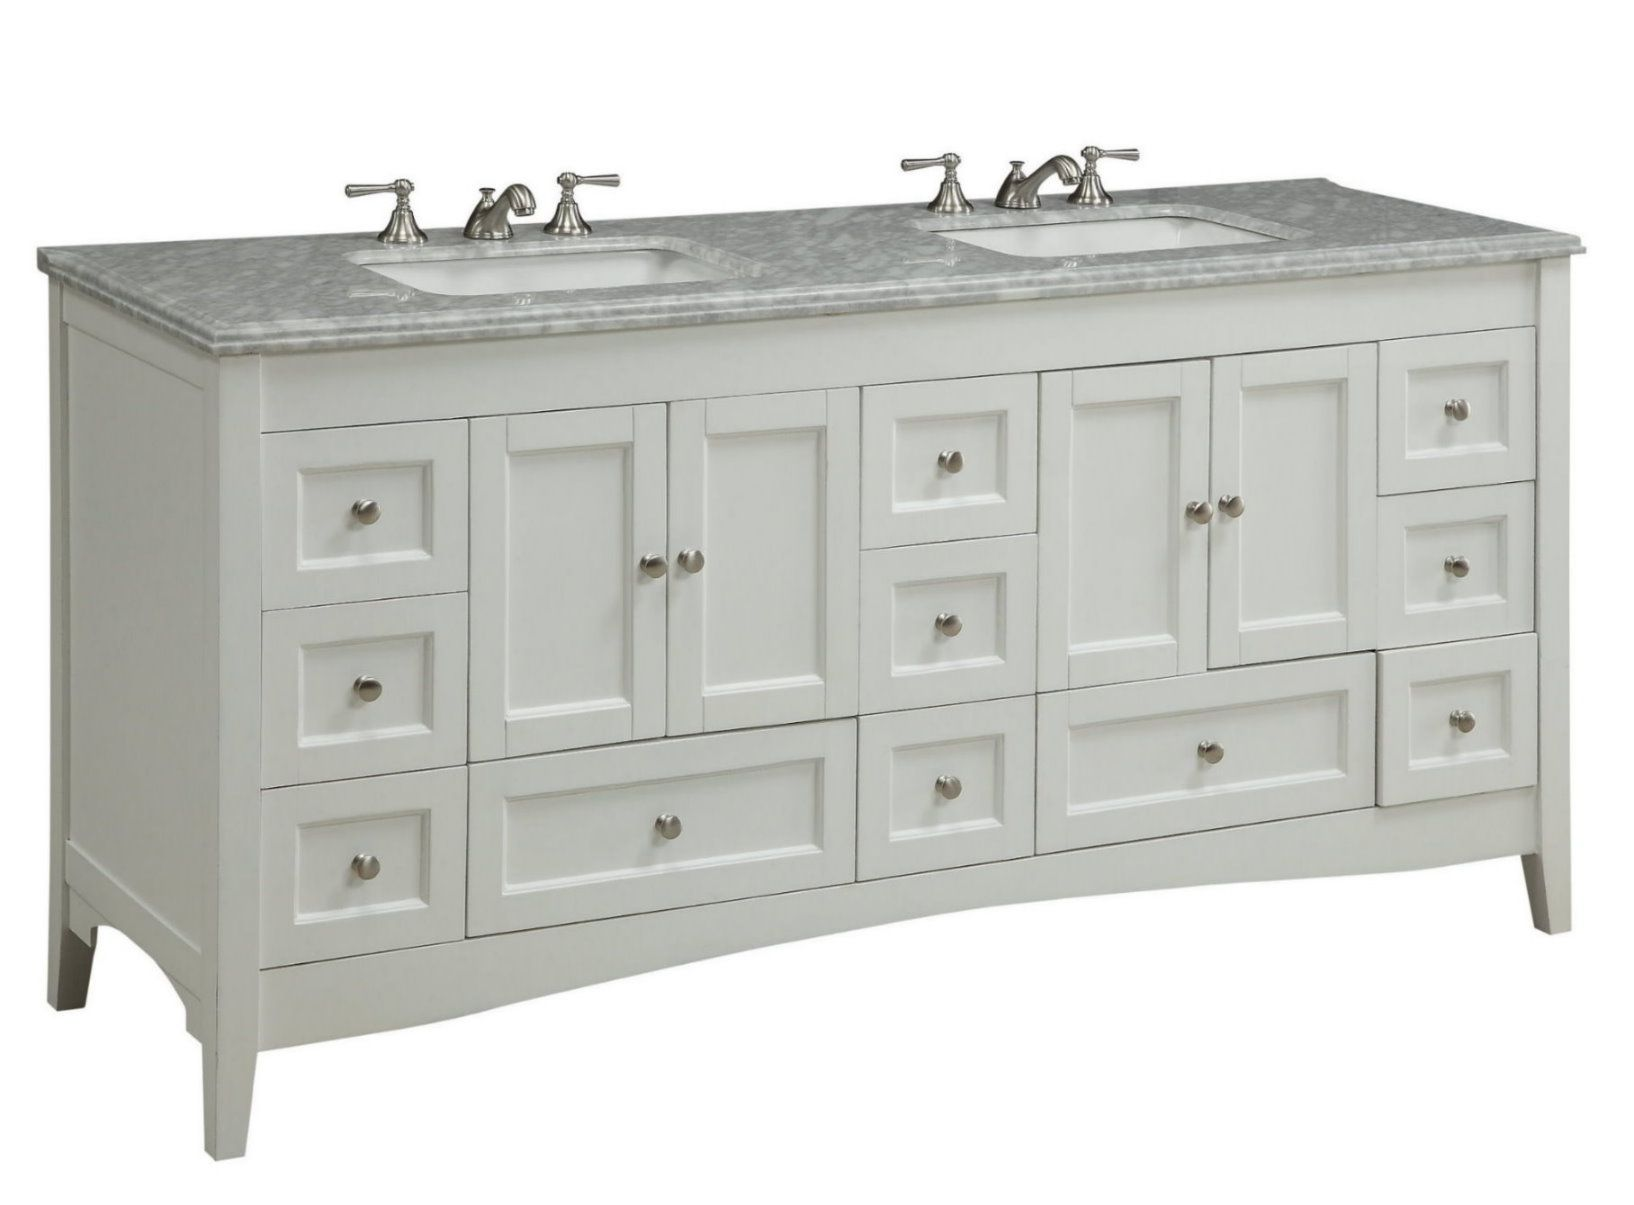 Adelina 72 Inch Double Sink Bathroom Vanity White Finish In 2020